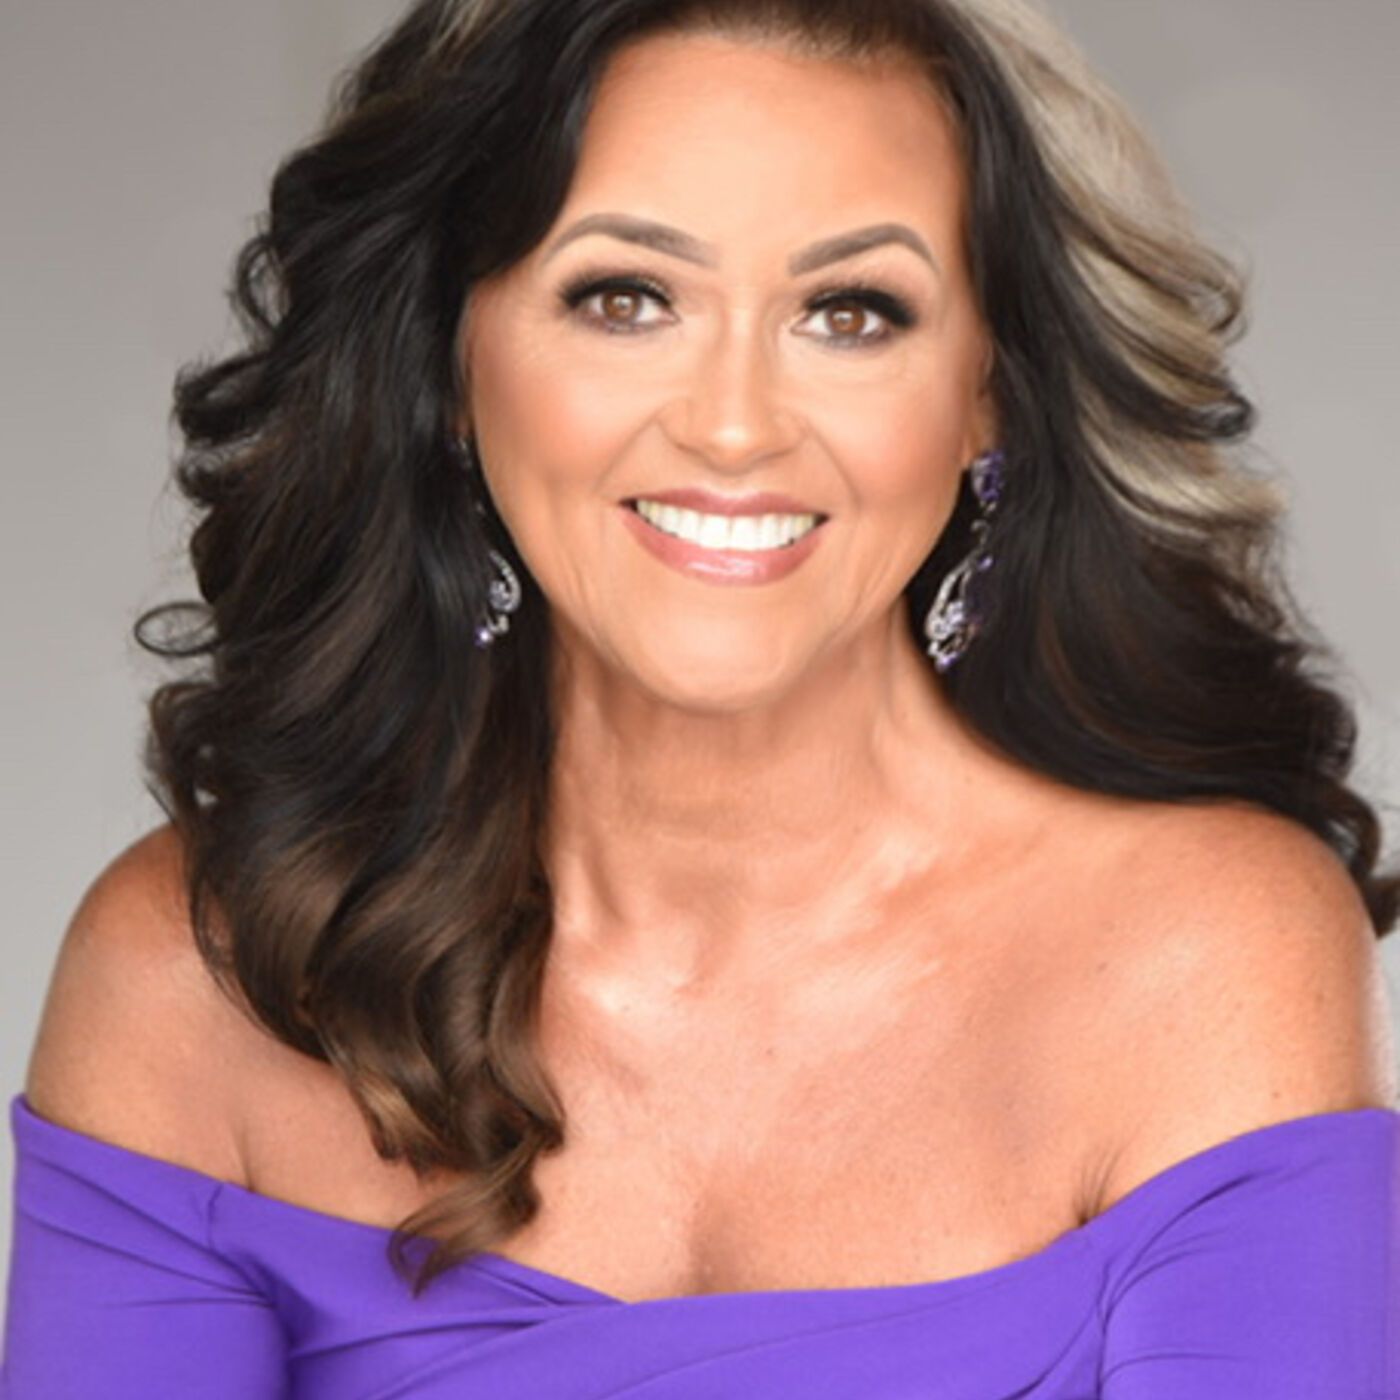 Choose to be happy! Dreisa Sherrill, Ms. Senior World 60's shares her secrets to happiness and a youthful glow.